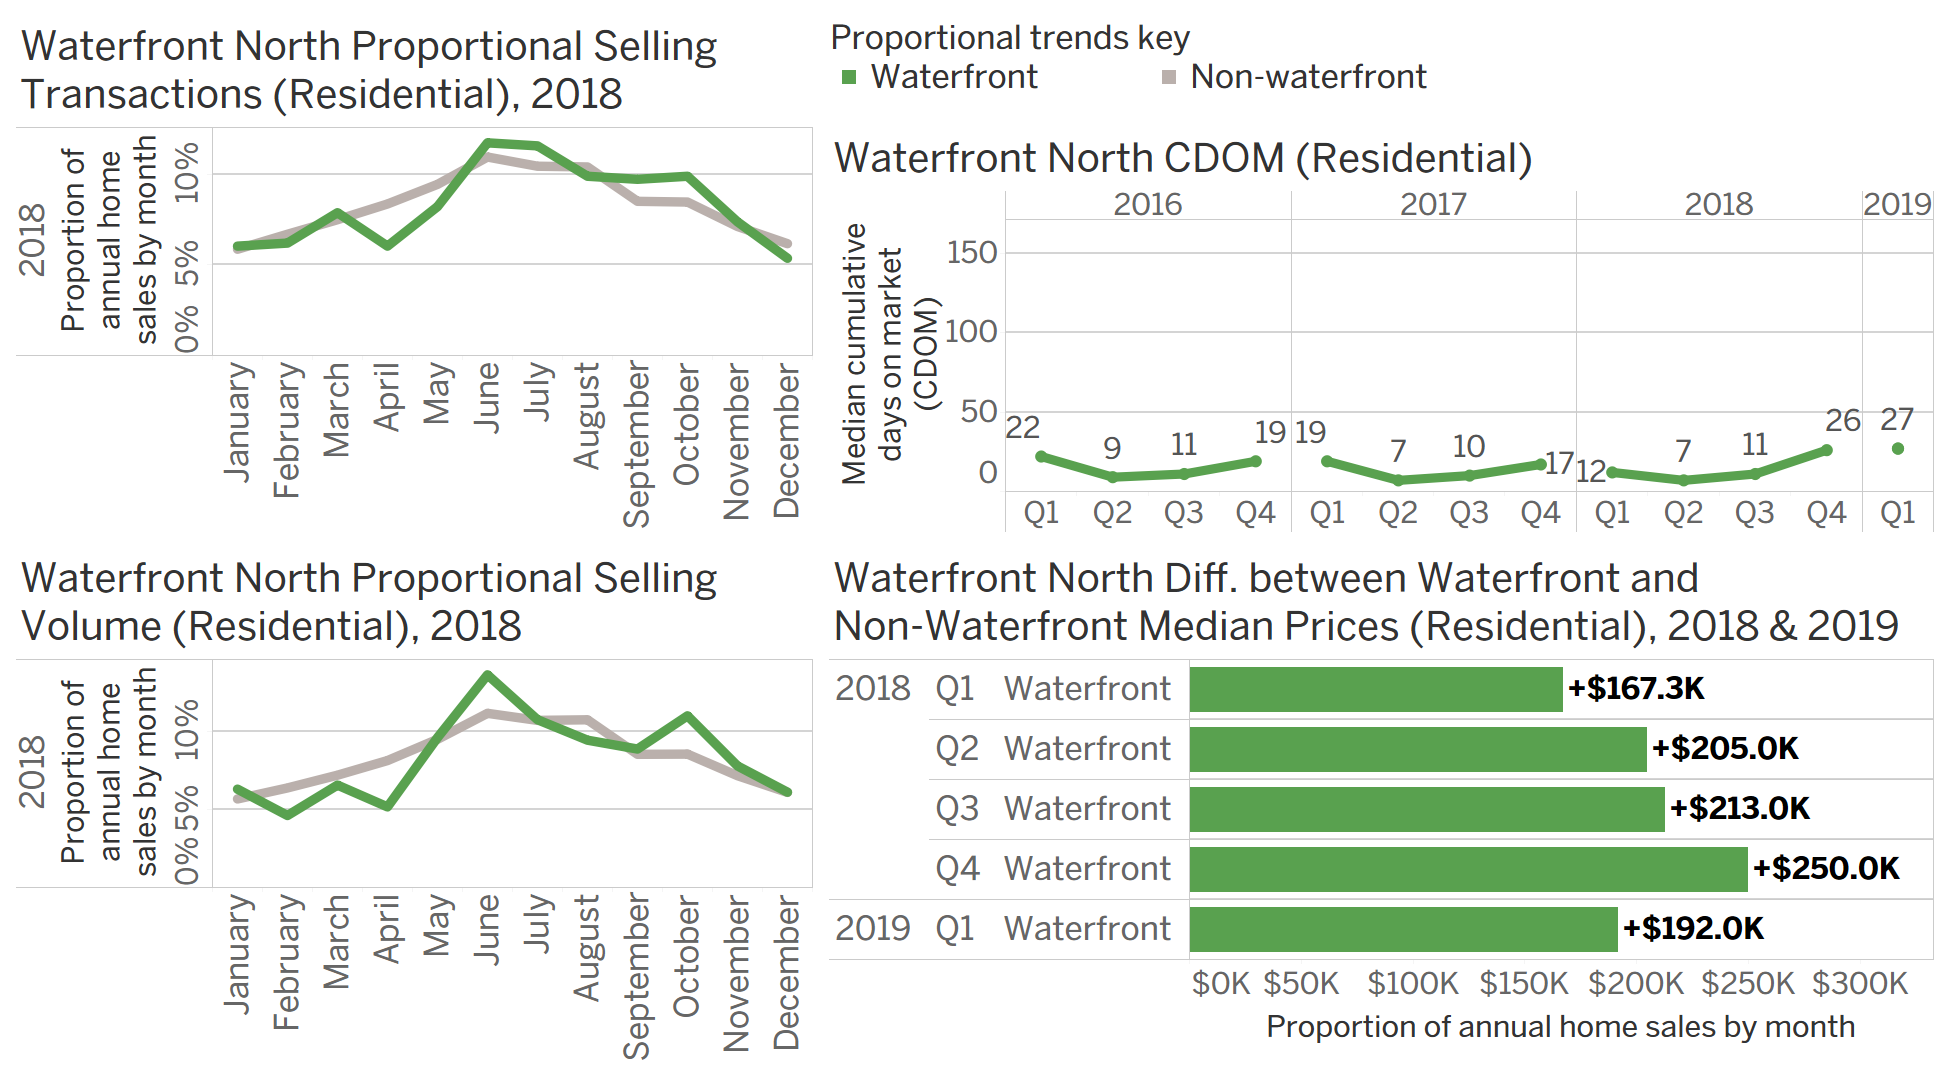 Chart Group D: seasonal waterfront transaction data for Waterfront North.